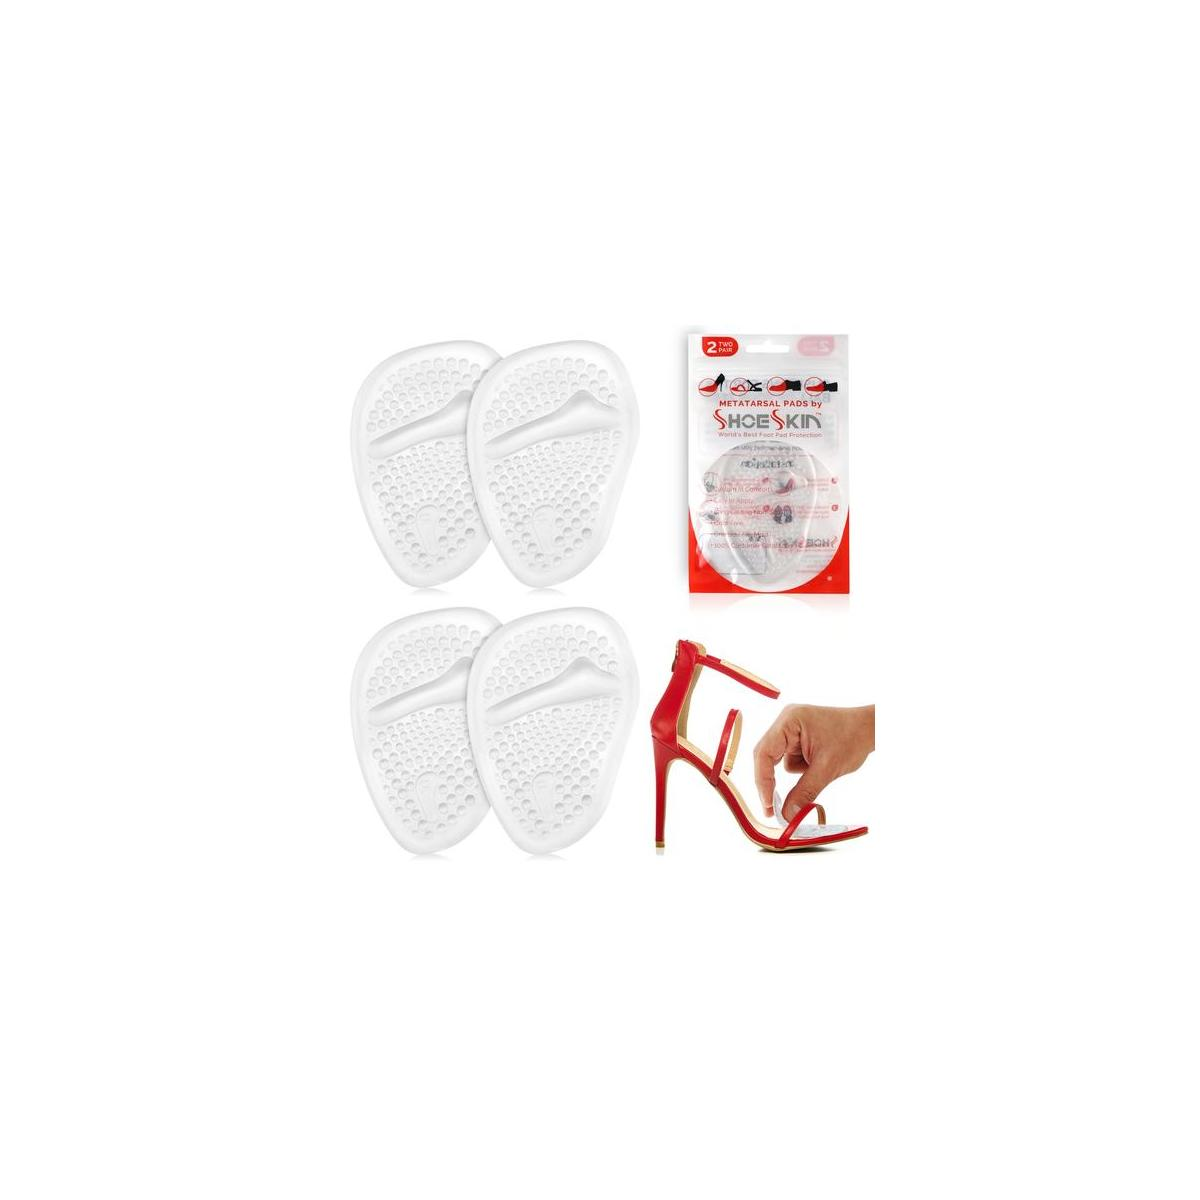 Metatarsal Pads - Ball of Foot Cushion Inserts for All Day Pain Relief and Comfort